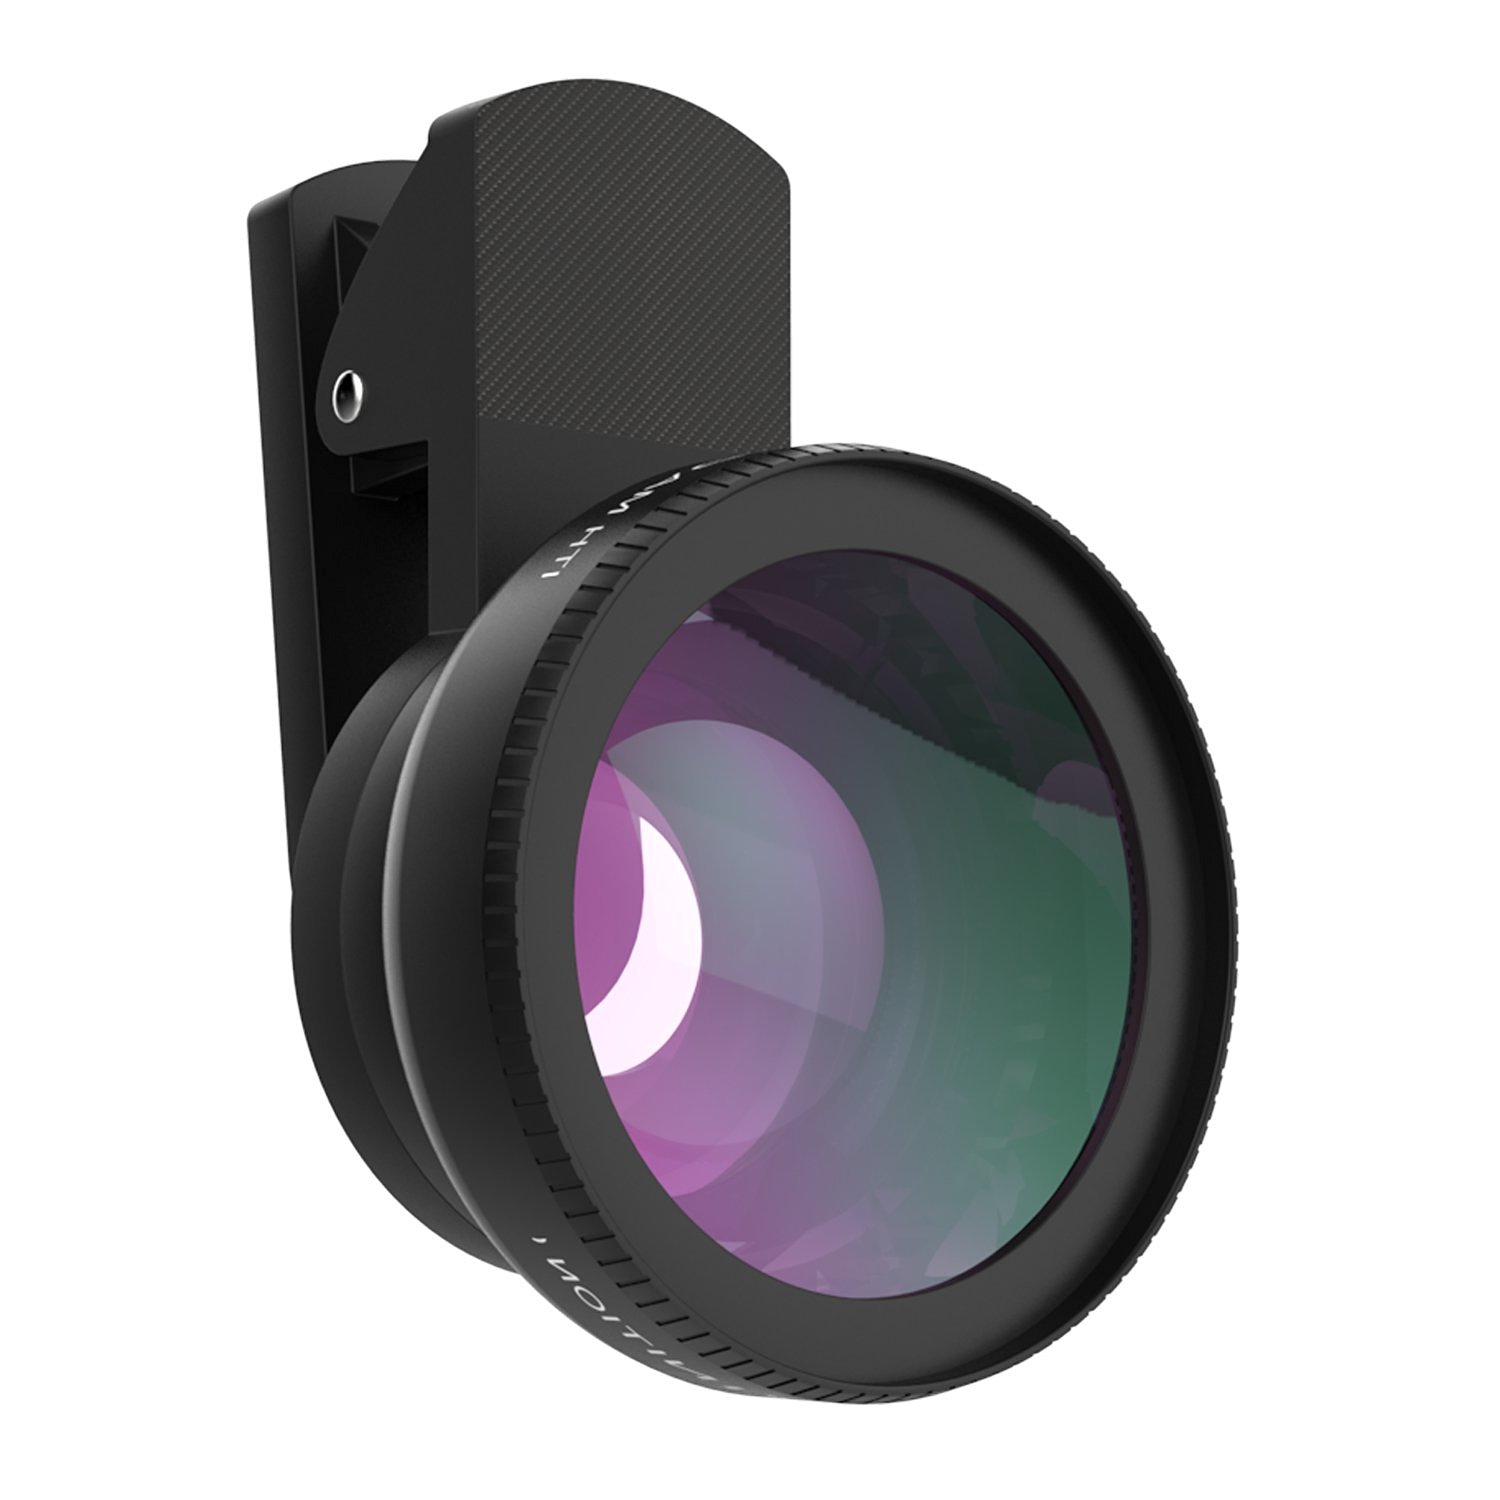 MoKo Universal Phone Camera Lens Kit, Clip-On 0.45X Super Wide Angle Lens and 15X Super Macro Lens, for iPhone SE / 6s / 6s Plus / 5s, Samsung Galaxy S6, HTC and Other Smartphone, BLACK